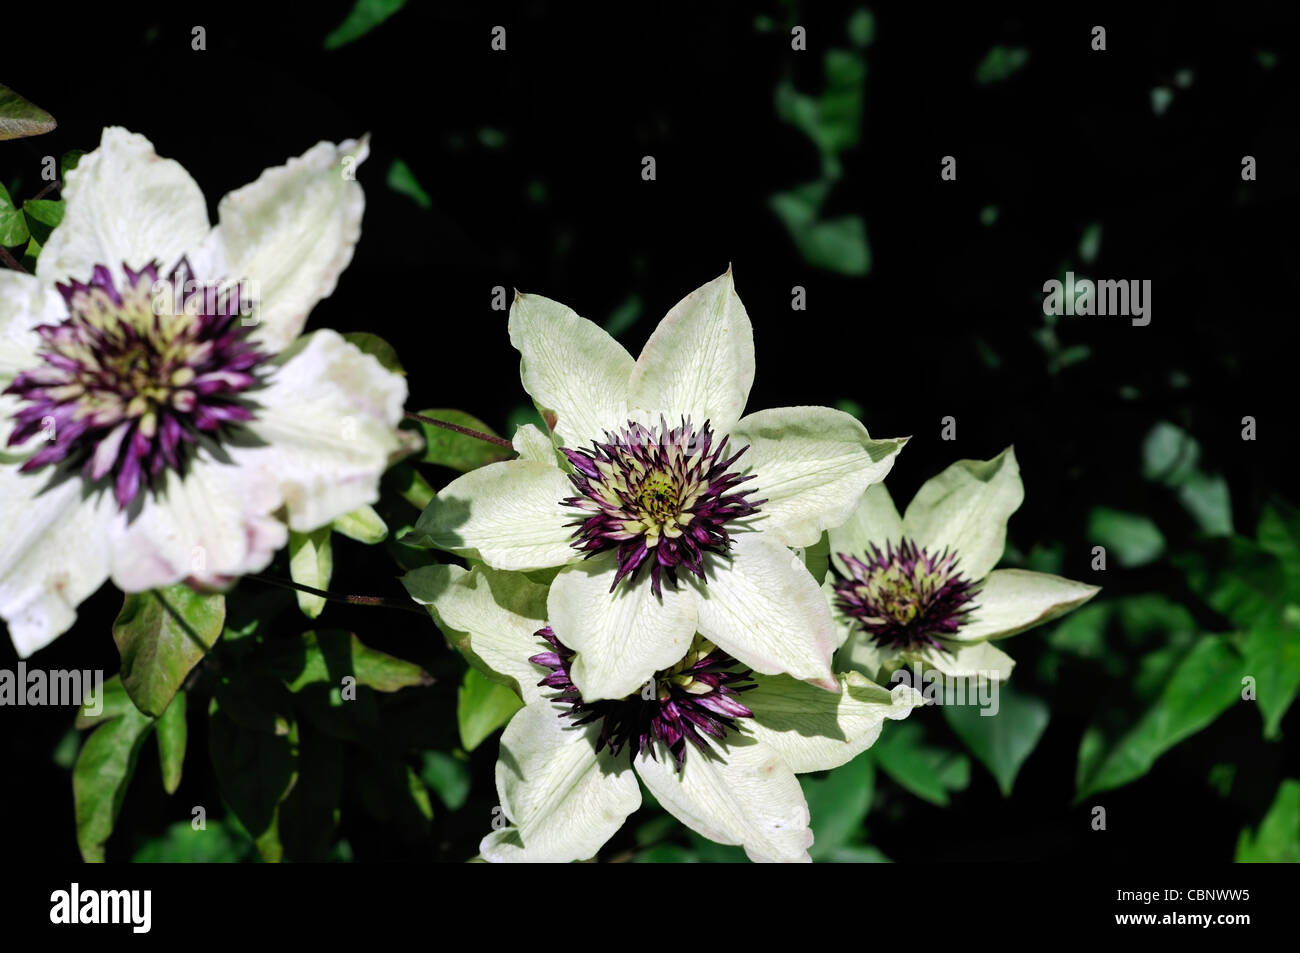 Clematis sieboldii florida purple white flowers fully double clematis sieboldii florida purple white flowers fully double climber climbing plant perennial flower bloom blossom dhlflorist Image collections